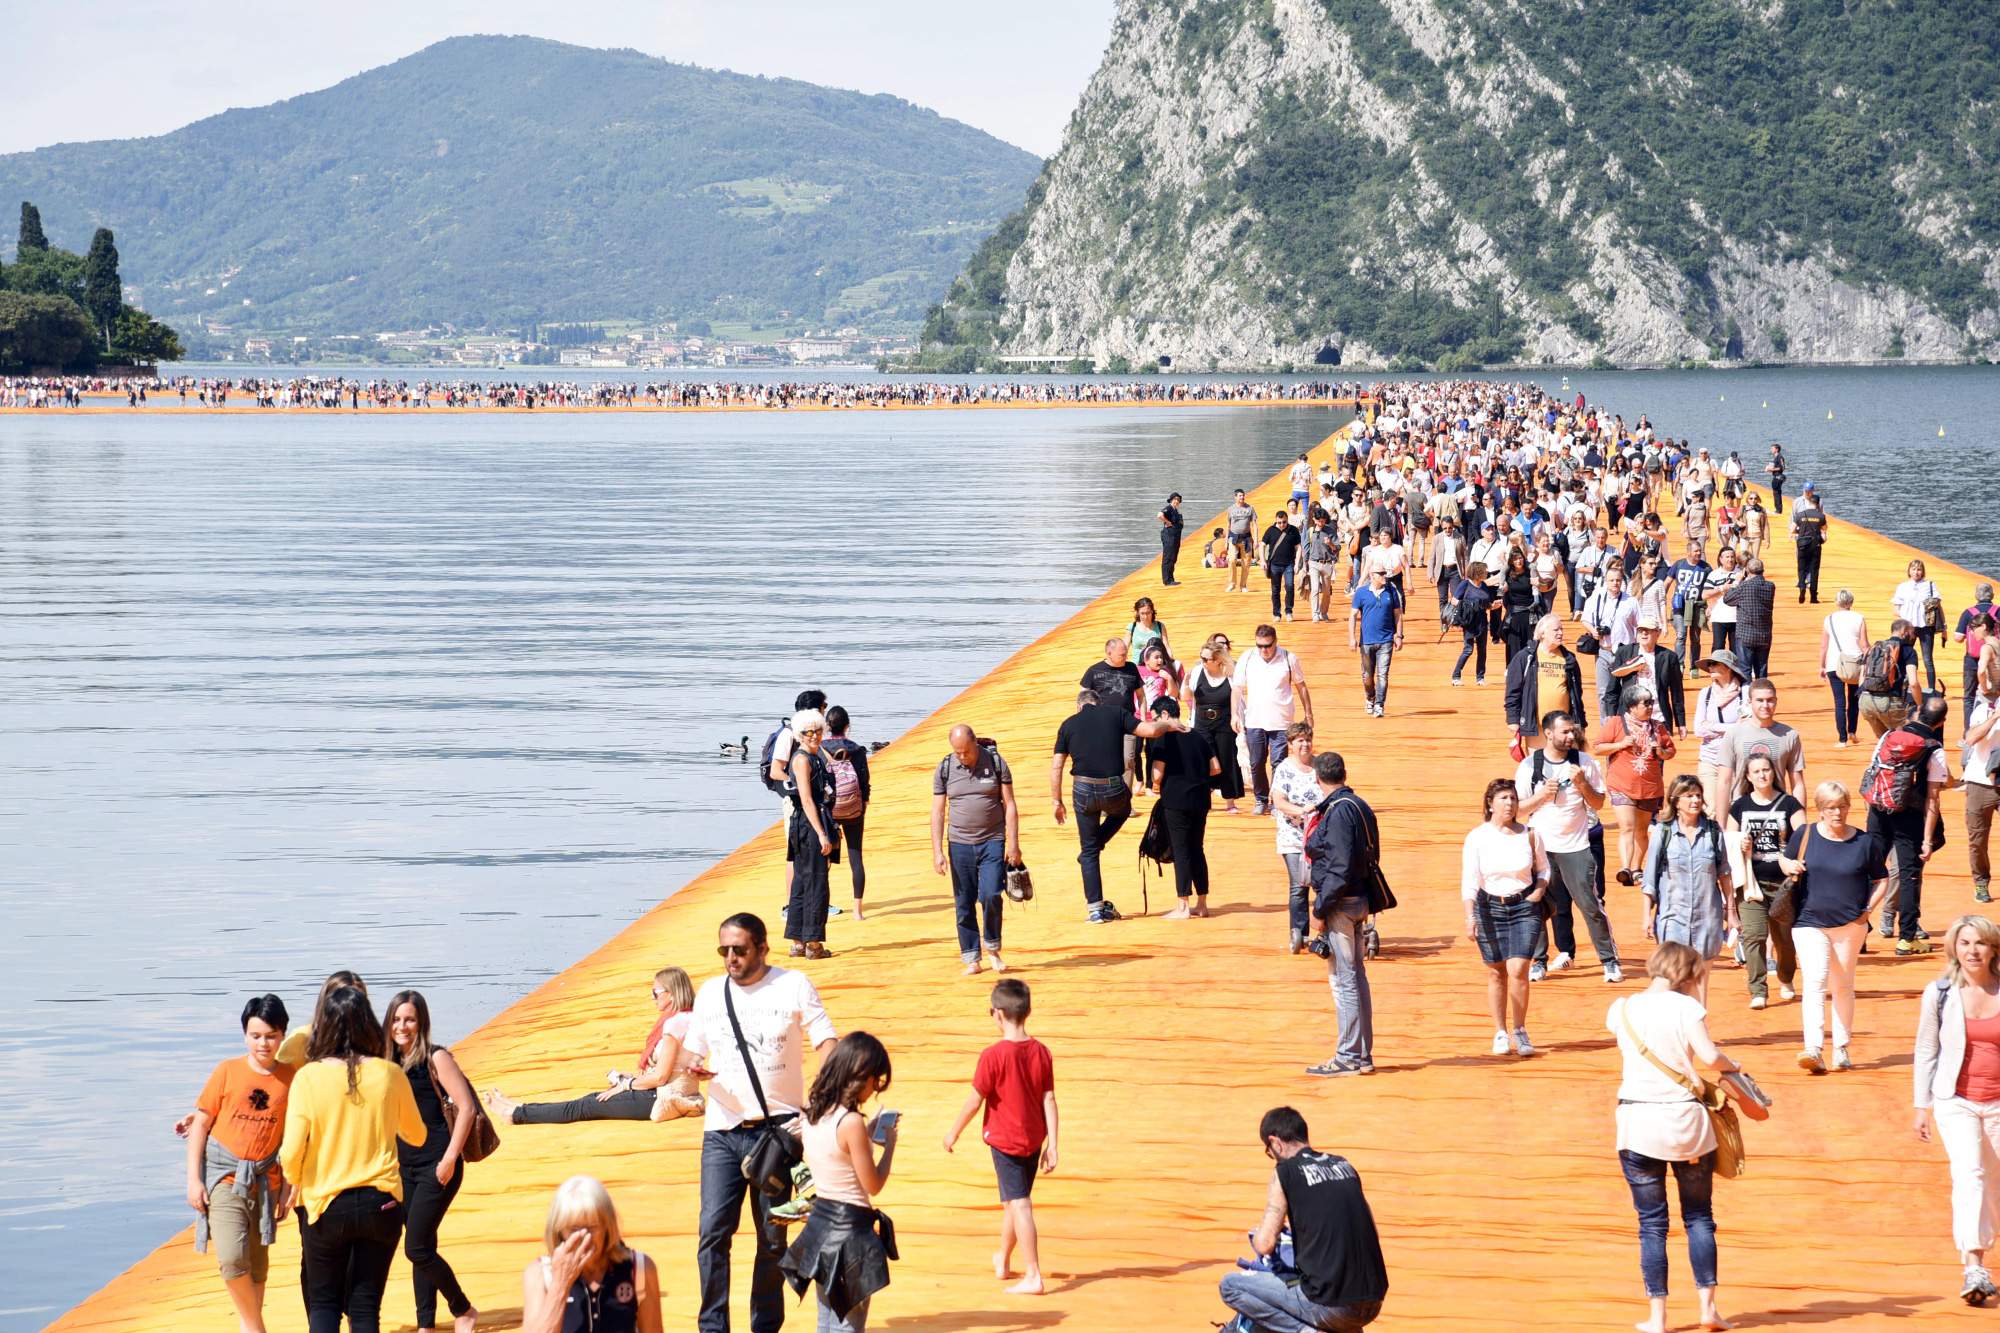 'The Floating Piers' by artist Christo on Lake Iseo, Lombardy, Italy - 18 Jun 2016